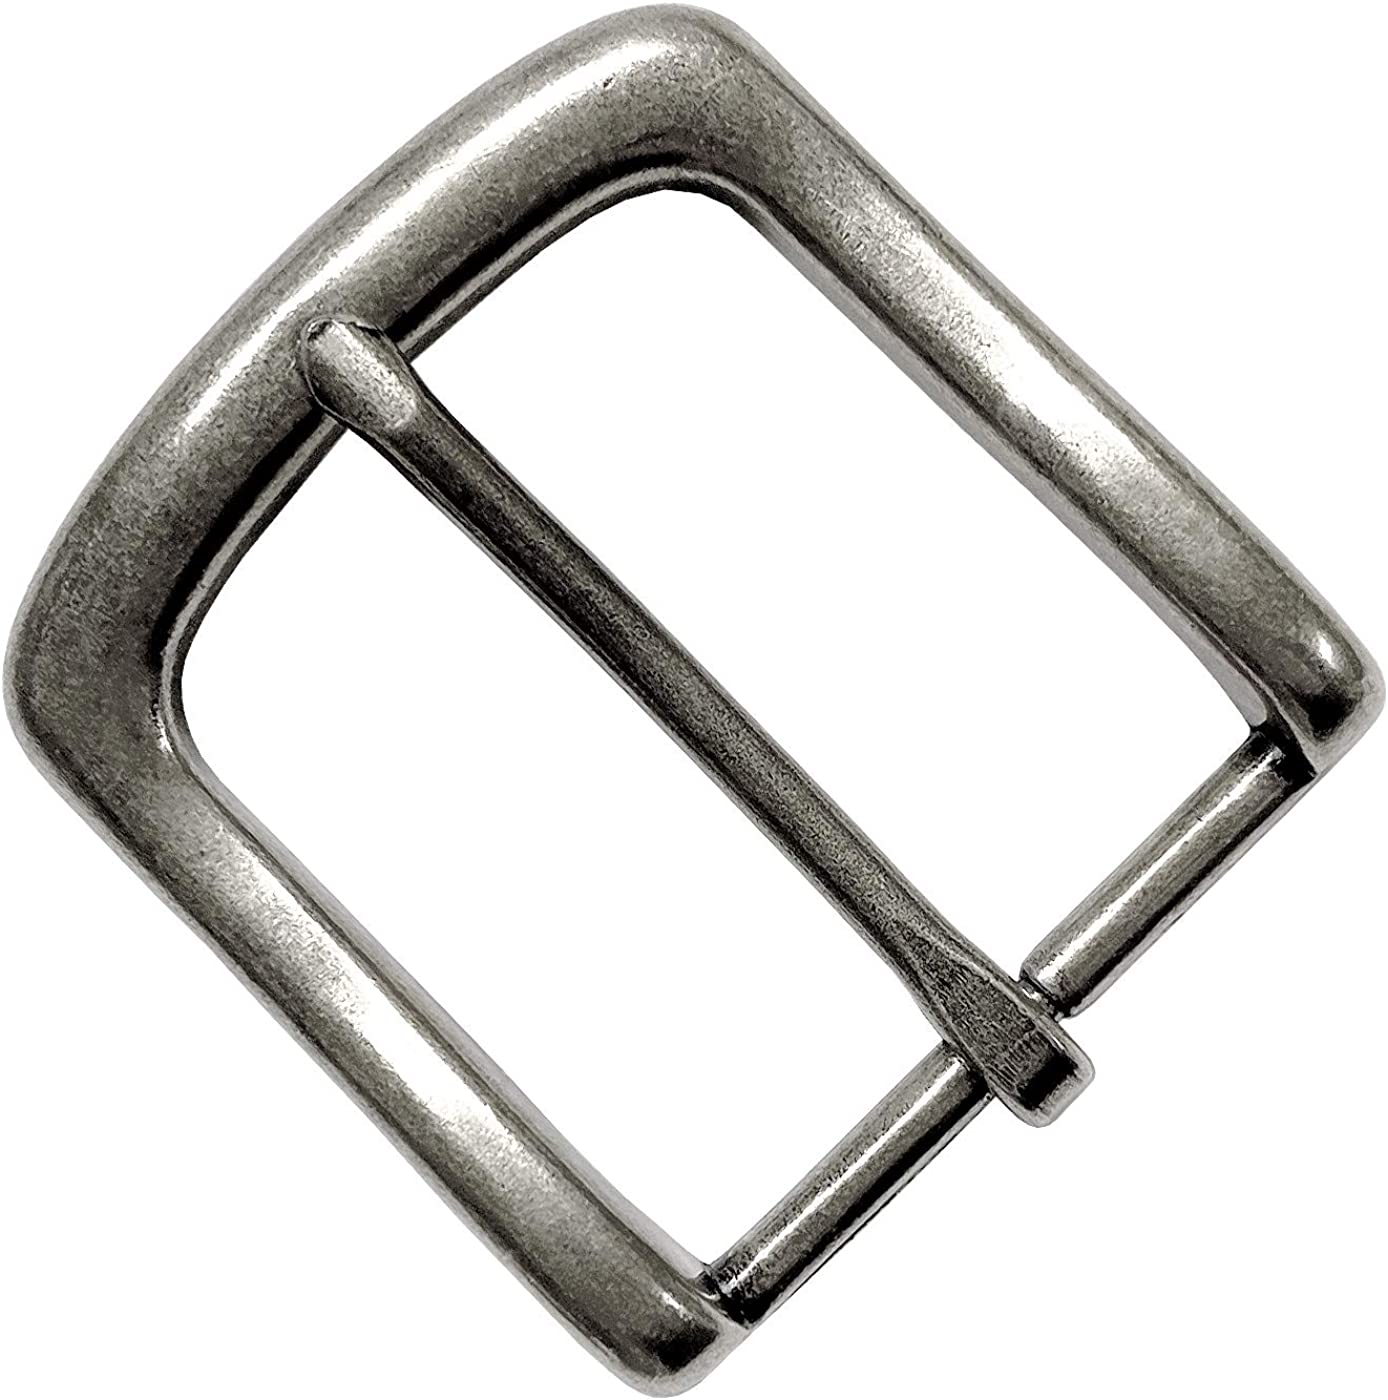 """Simple Metal Buckle Single Prong Square Belt Buckle Width 1 1/2"""" (38 Mm) (Ant. Silver): Clothing"""